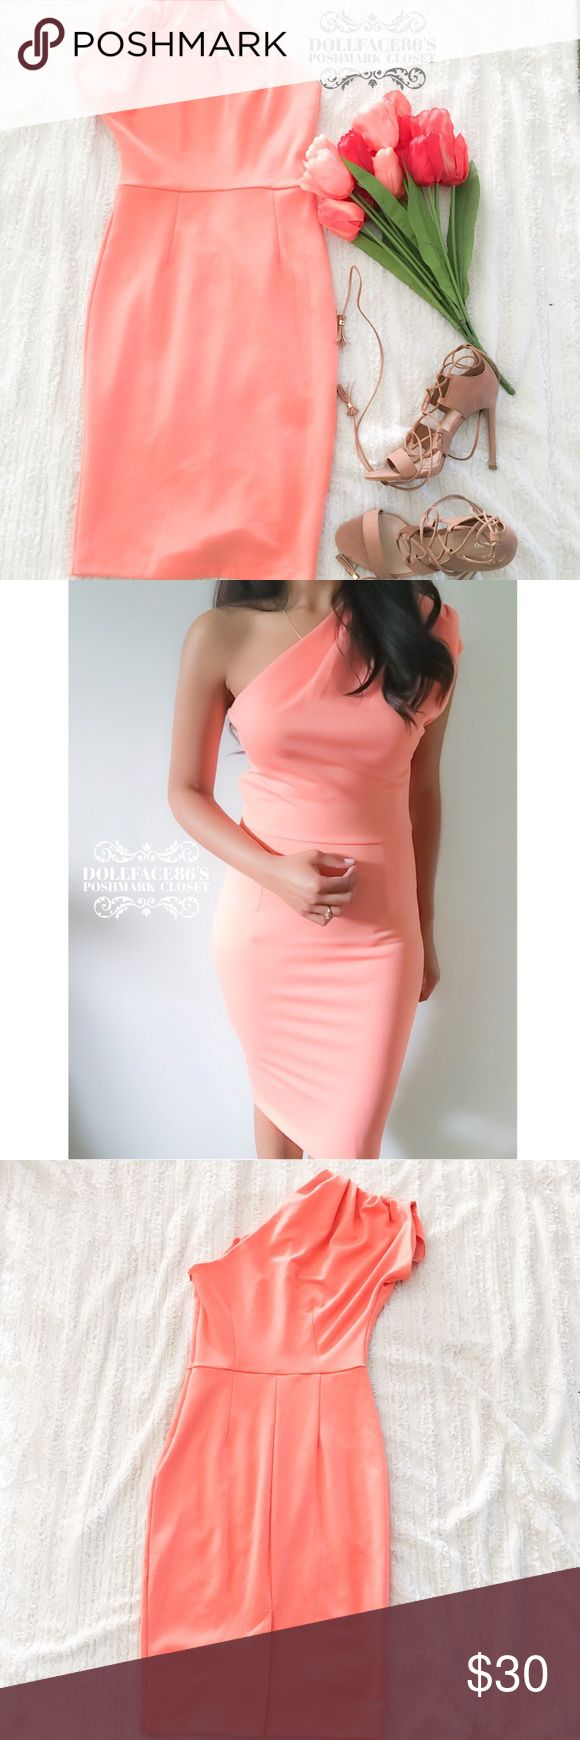 "ASOS Peach One Shoulder Midi Dress ✦  this stretchy peach dress has one shoulder & a midi fit, very glam & perfect for Spring ✦{I am not a professional photographer, actual color of item may vary ➾slightly from pics}  ❥chest:15"" ❥waist:13"" ❥length:39.5"" ❥sleeves:8"" ➳material/care:polyester+Elastane/machine wash  ➳fit:true/small ➳condition:  ✦20% off bundles of 3/more items ✦No Trades  ✦NO HOLDS ✦No transactions outside Poshmark  ✦No lowball offers/sales are final ASOS Dresses Midi"